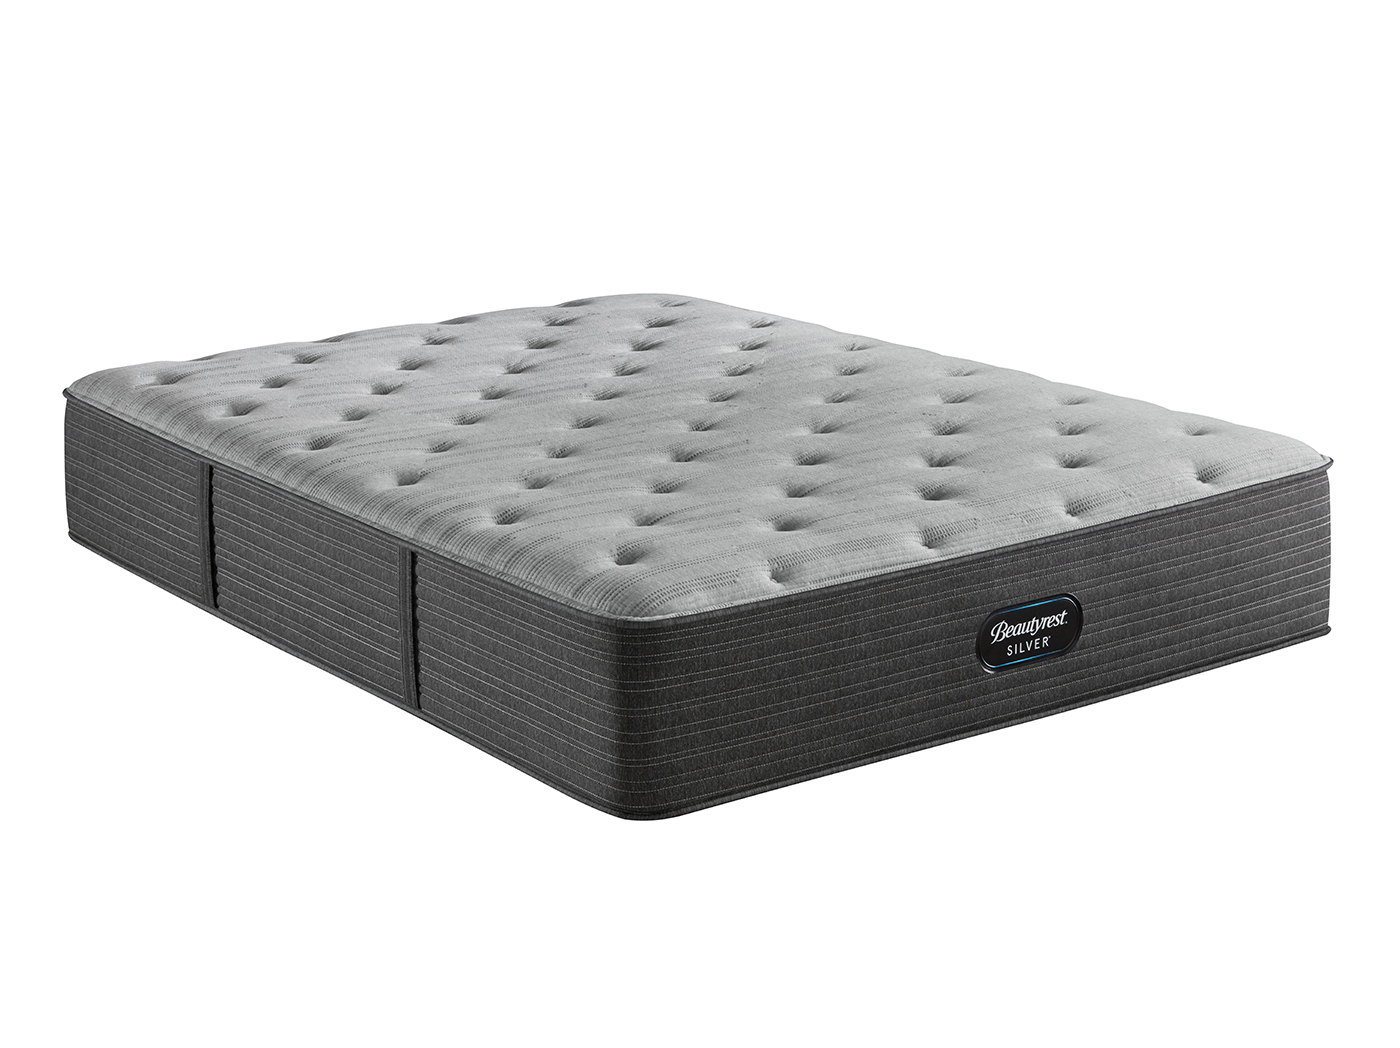 Beautyrest Silver BRS900C-RS Medium Queen Mattress